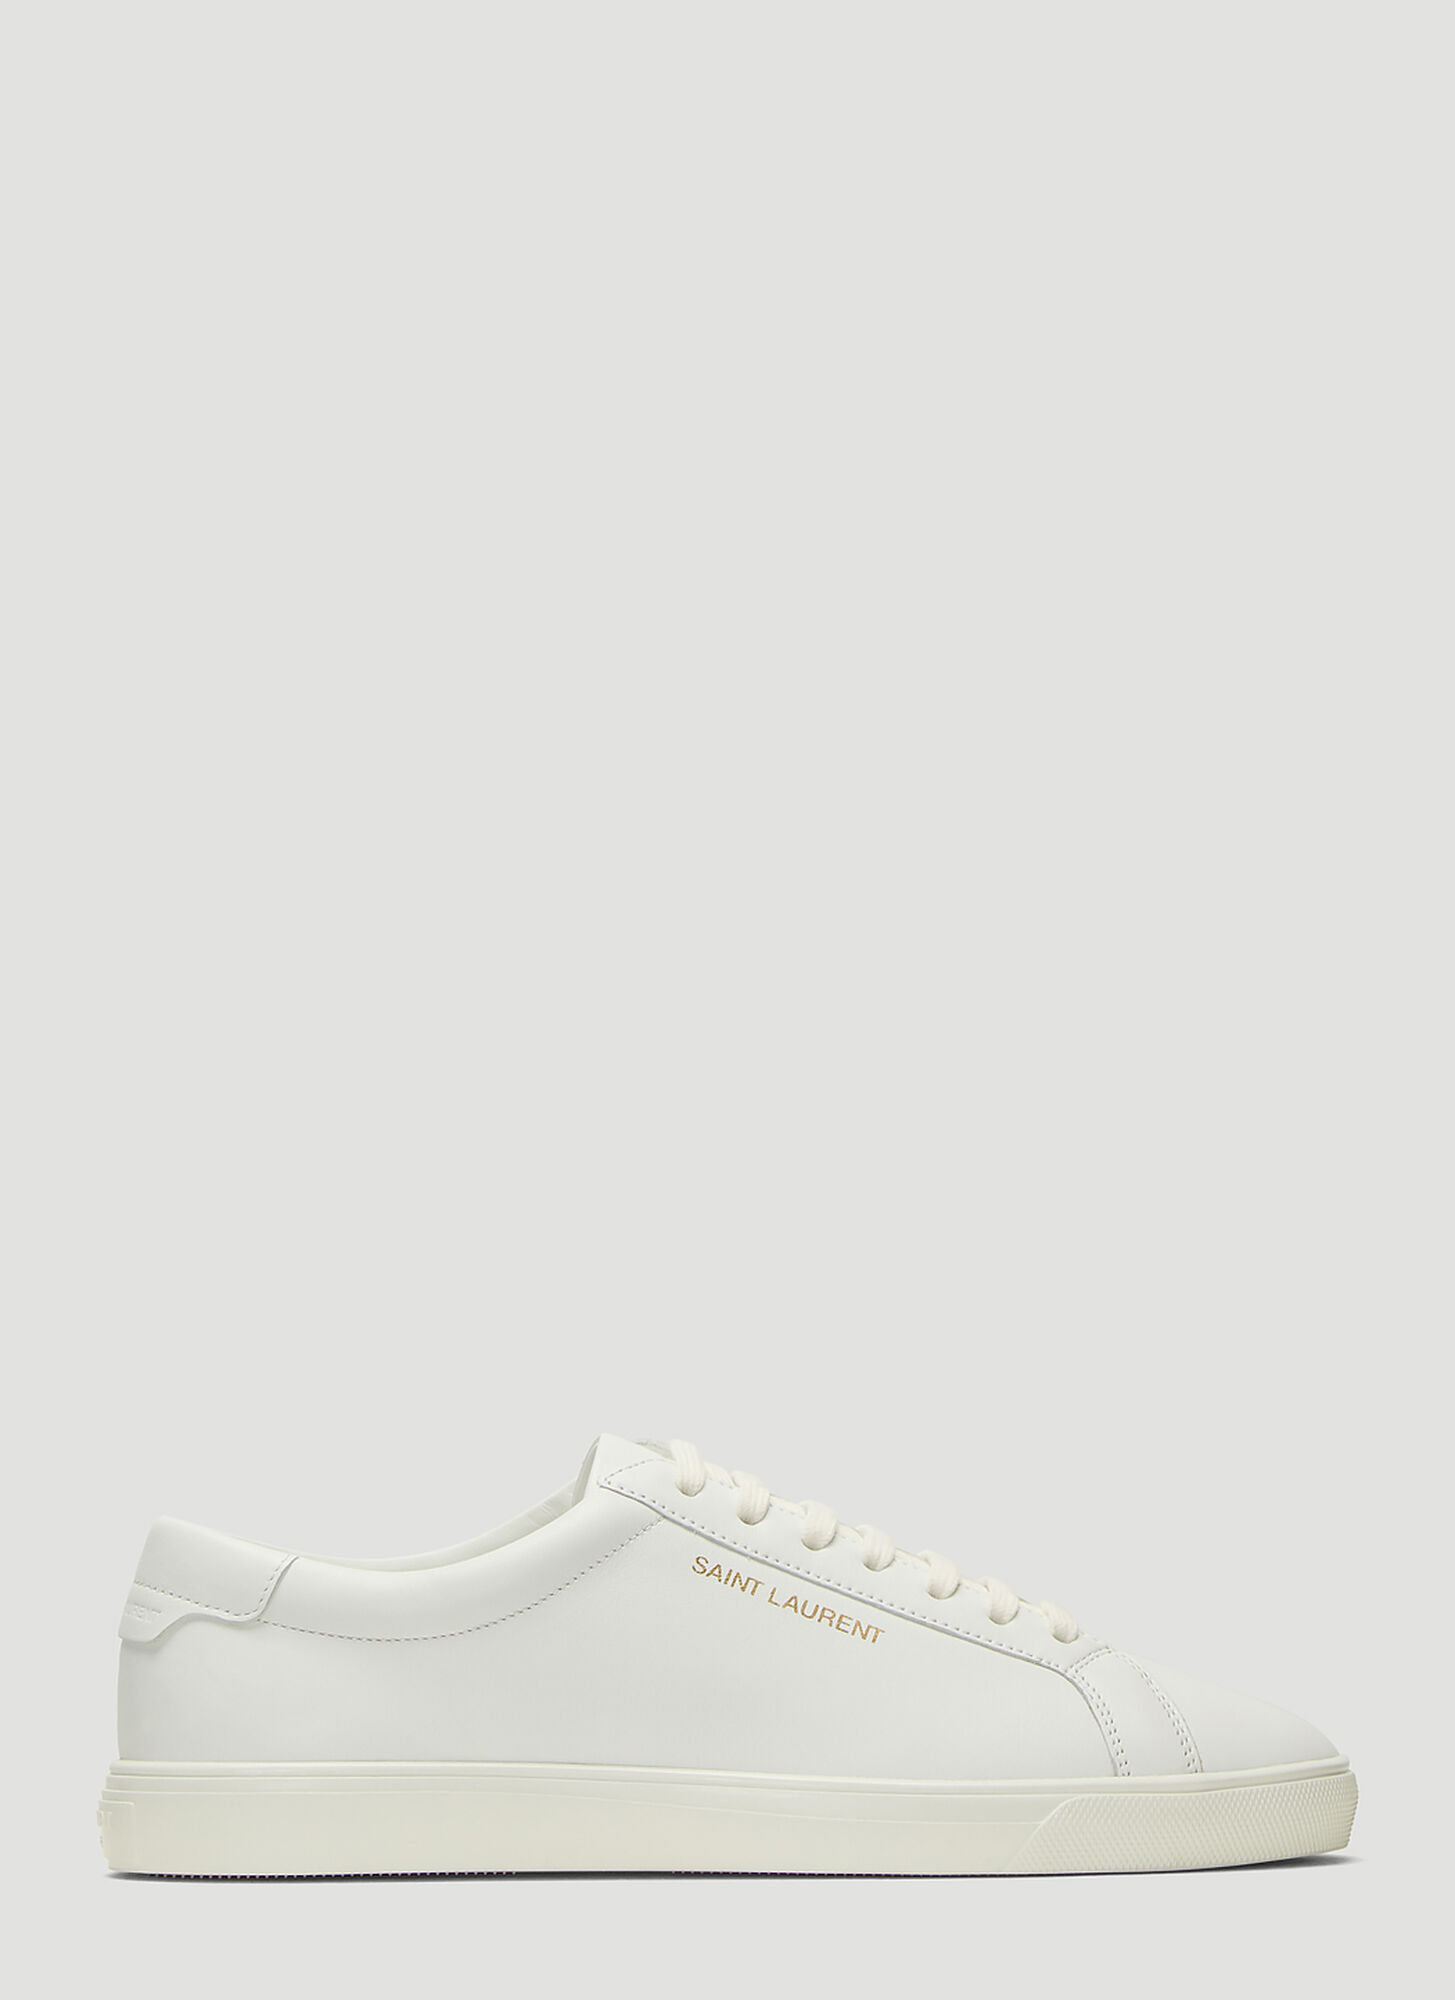 Saint Laurent Moon Plus Sneakers in White